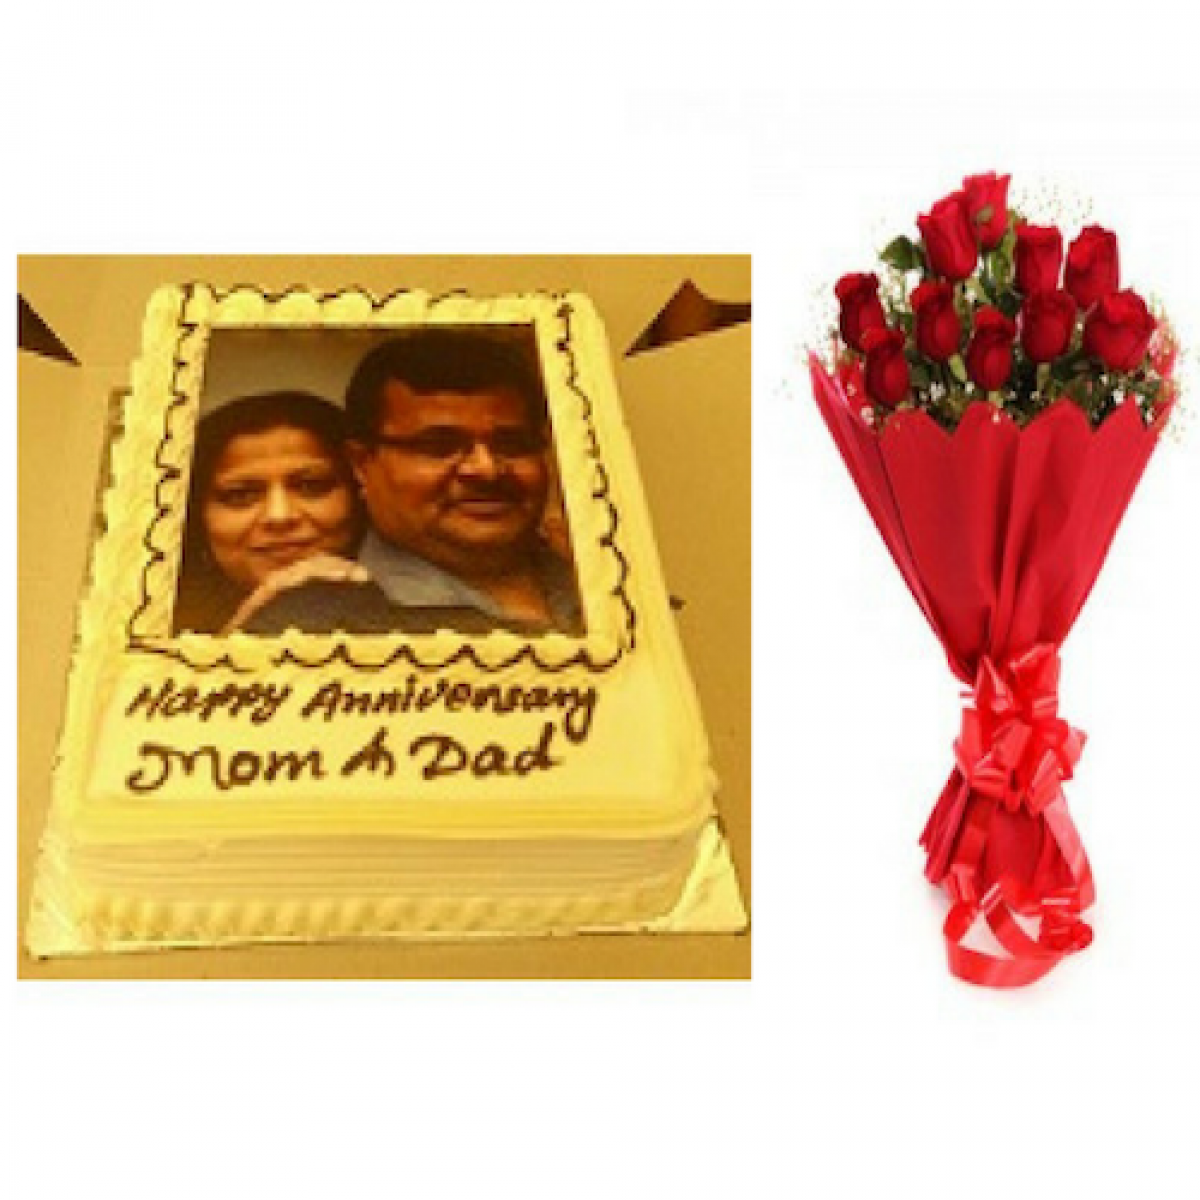 Wedding Anniversary Gifts Online Delivery : Home / More Gift Ideas / Flowers / Personalized Wedding Anniversary ...